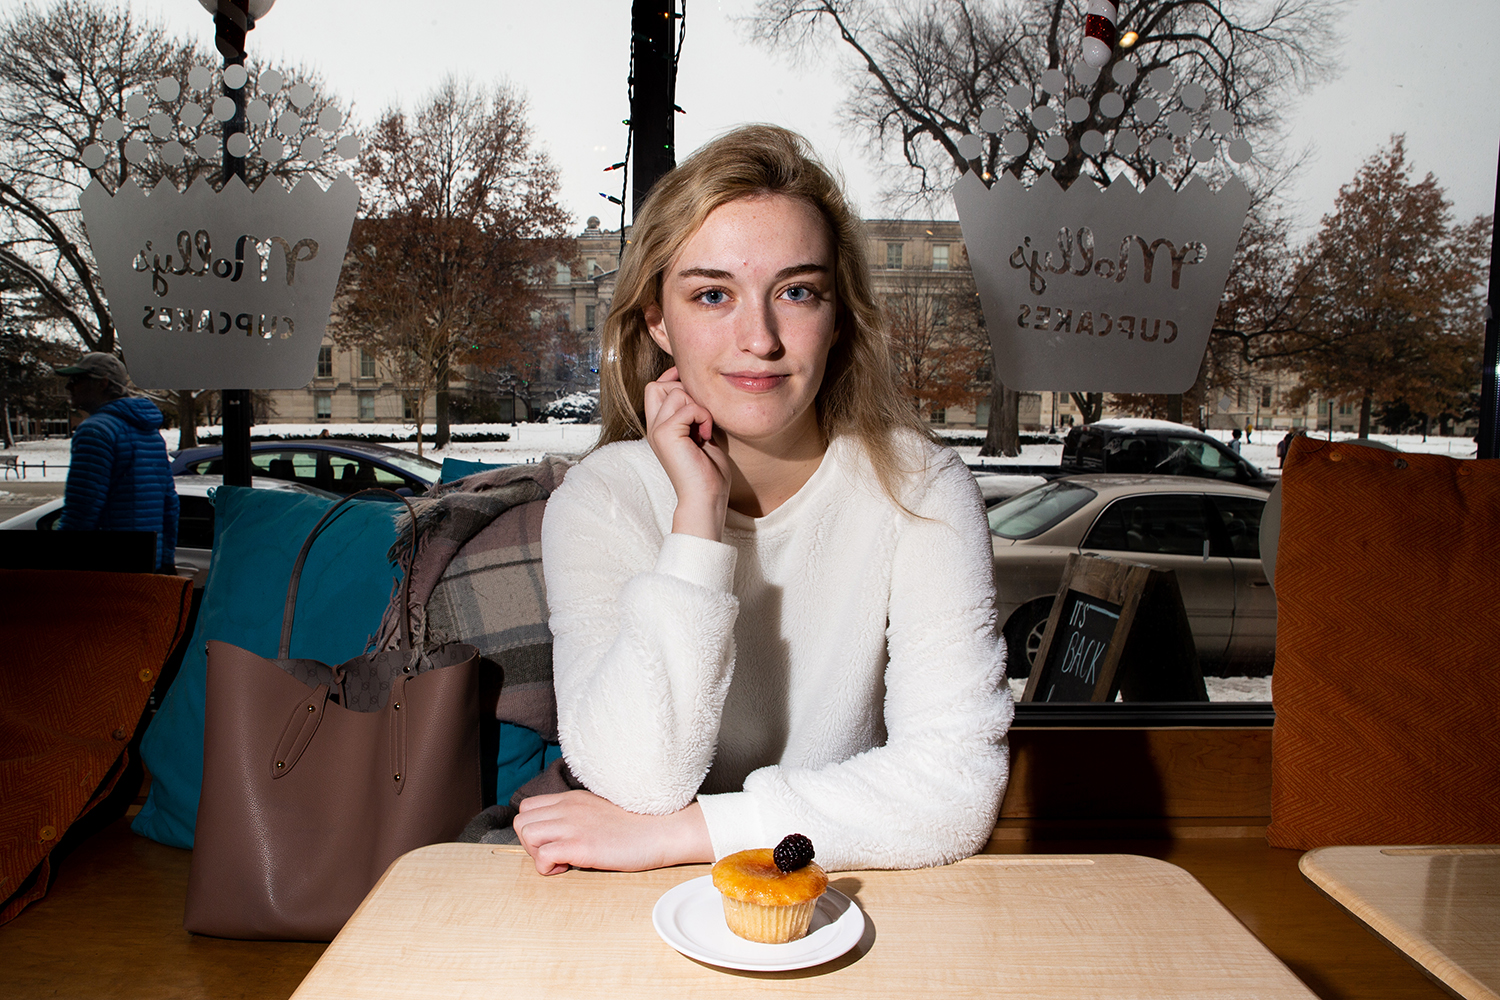 Danielle Leveille poses for a portrait in Molly's Cupcakes in Iowa City on Wednesday, Nov. 28, 2018.